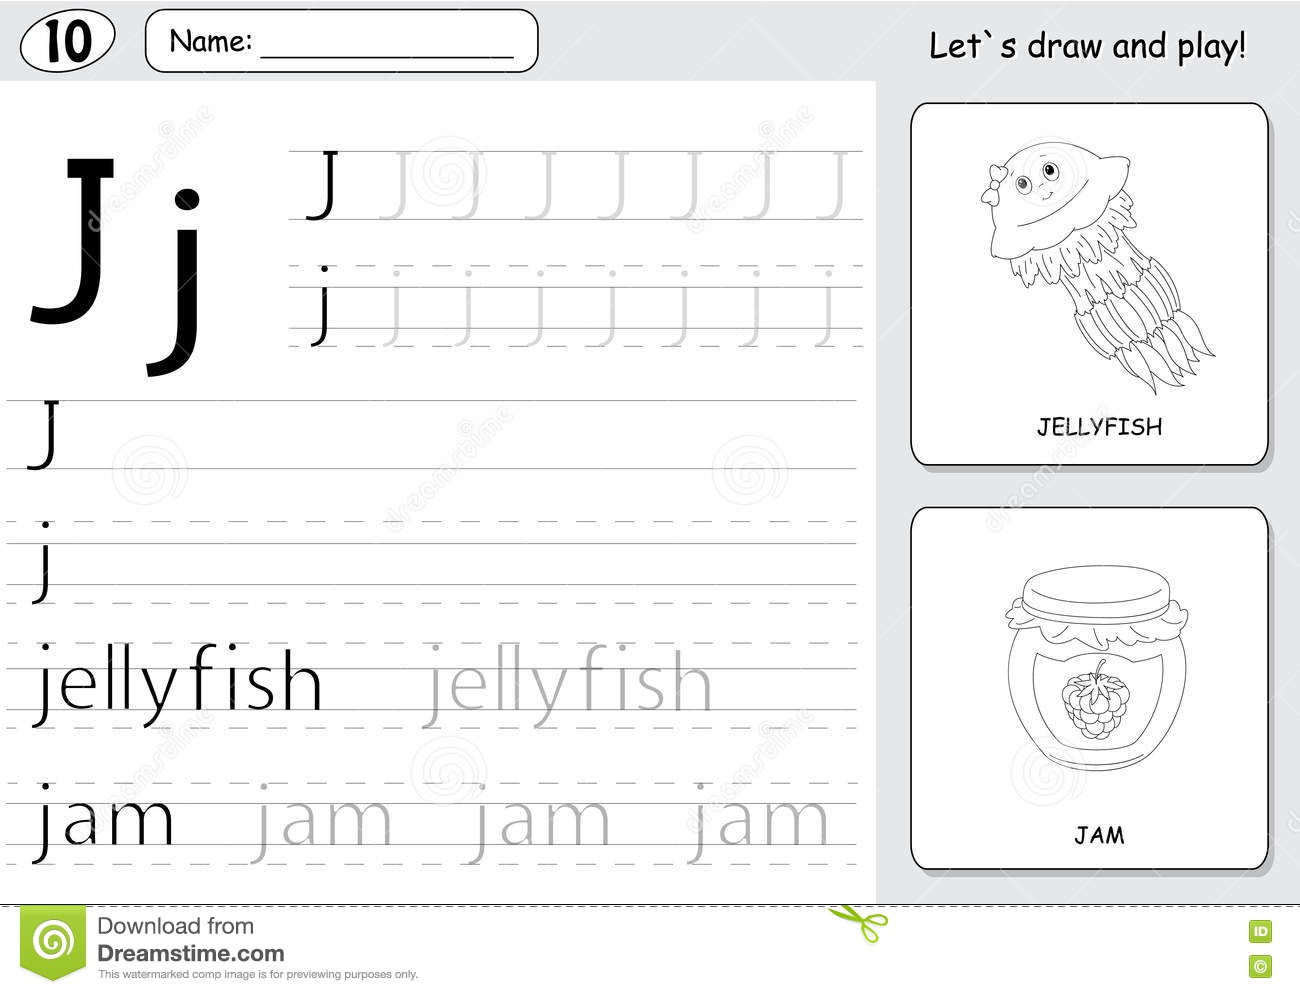 Jellyfish Worksheet